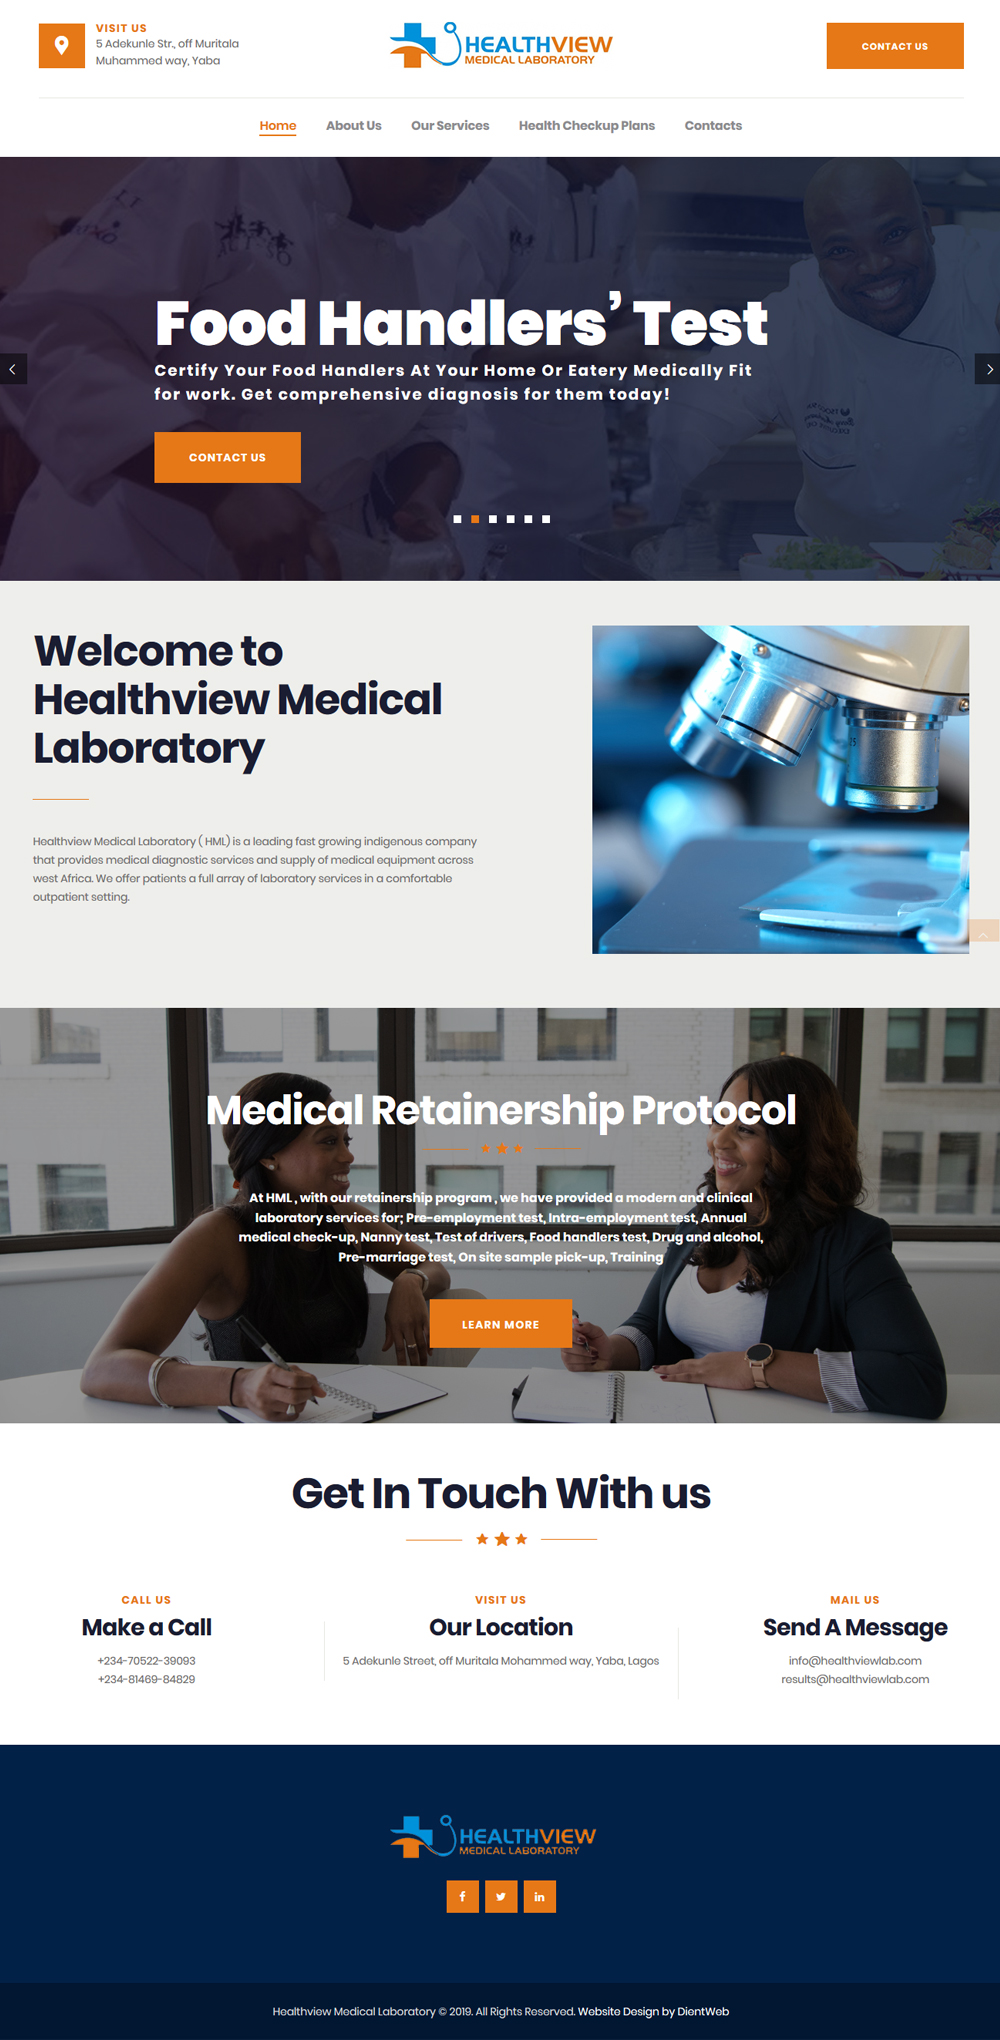 healthview website design home page